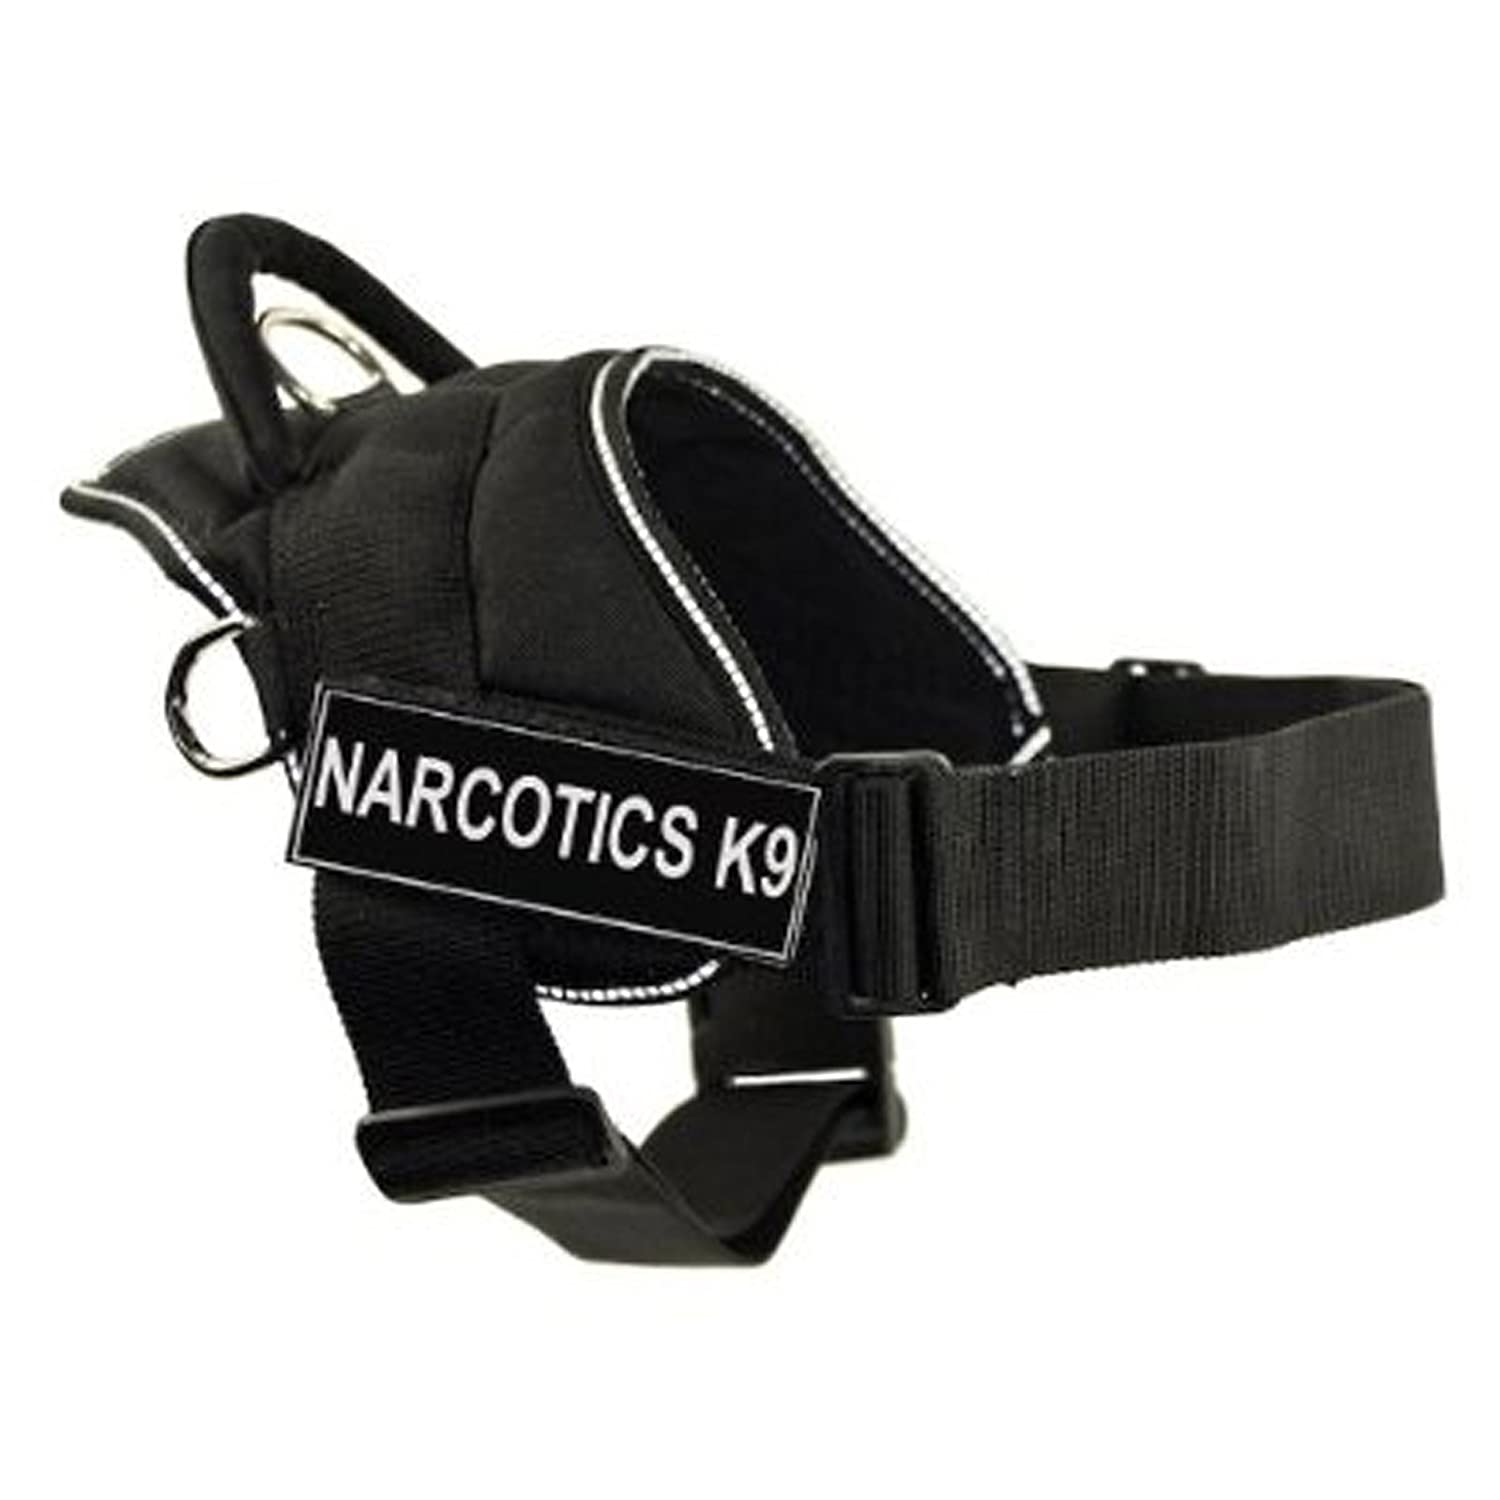 Dean & Tyler DT Fun Works Harness, Narcotics K9, Black With Reflective Trim, XX-Small Fits Girth Size  18-Inch to 22-Inch